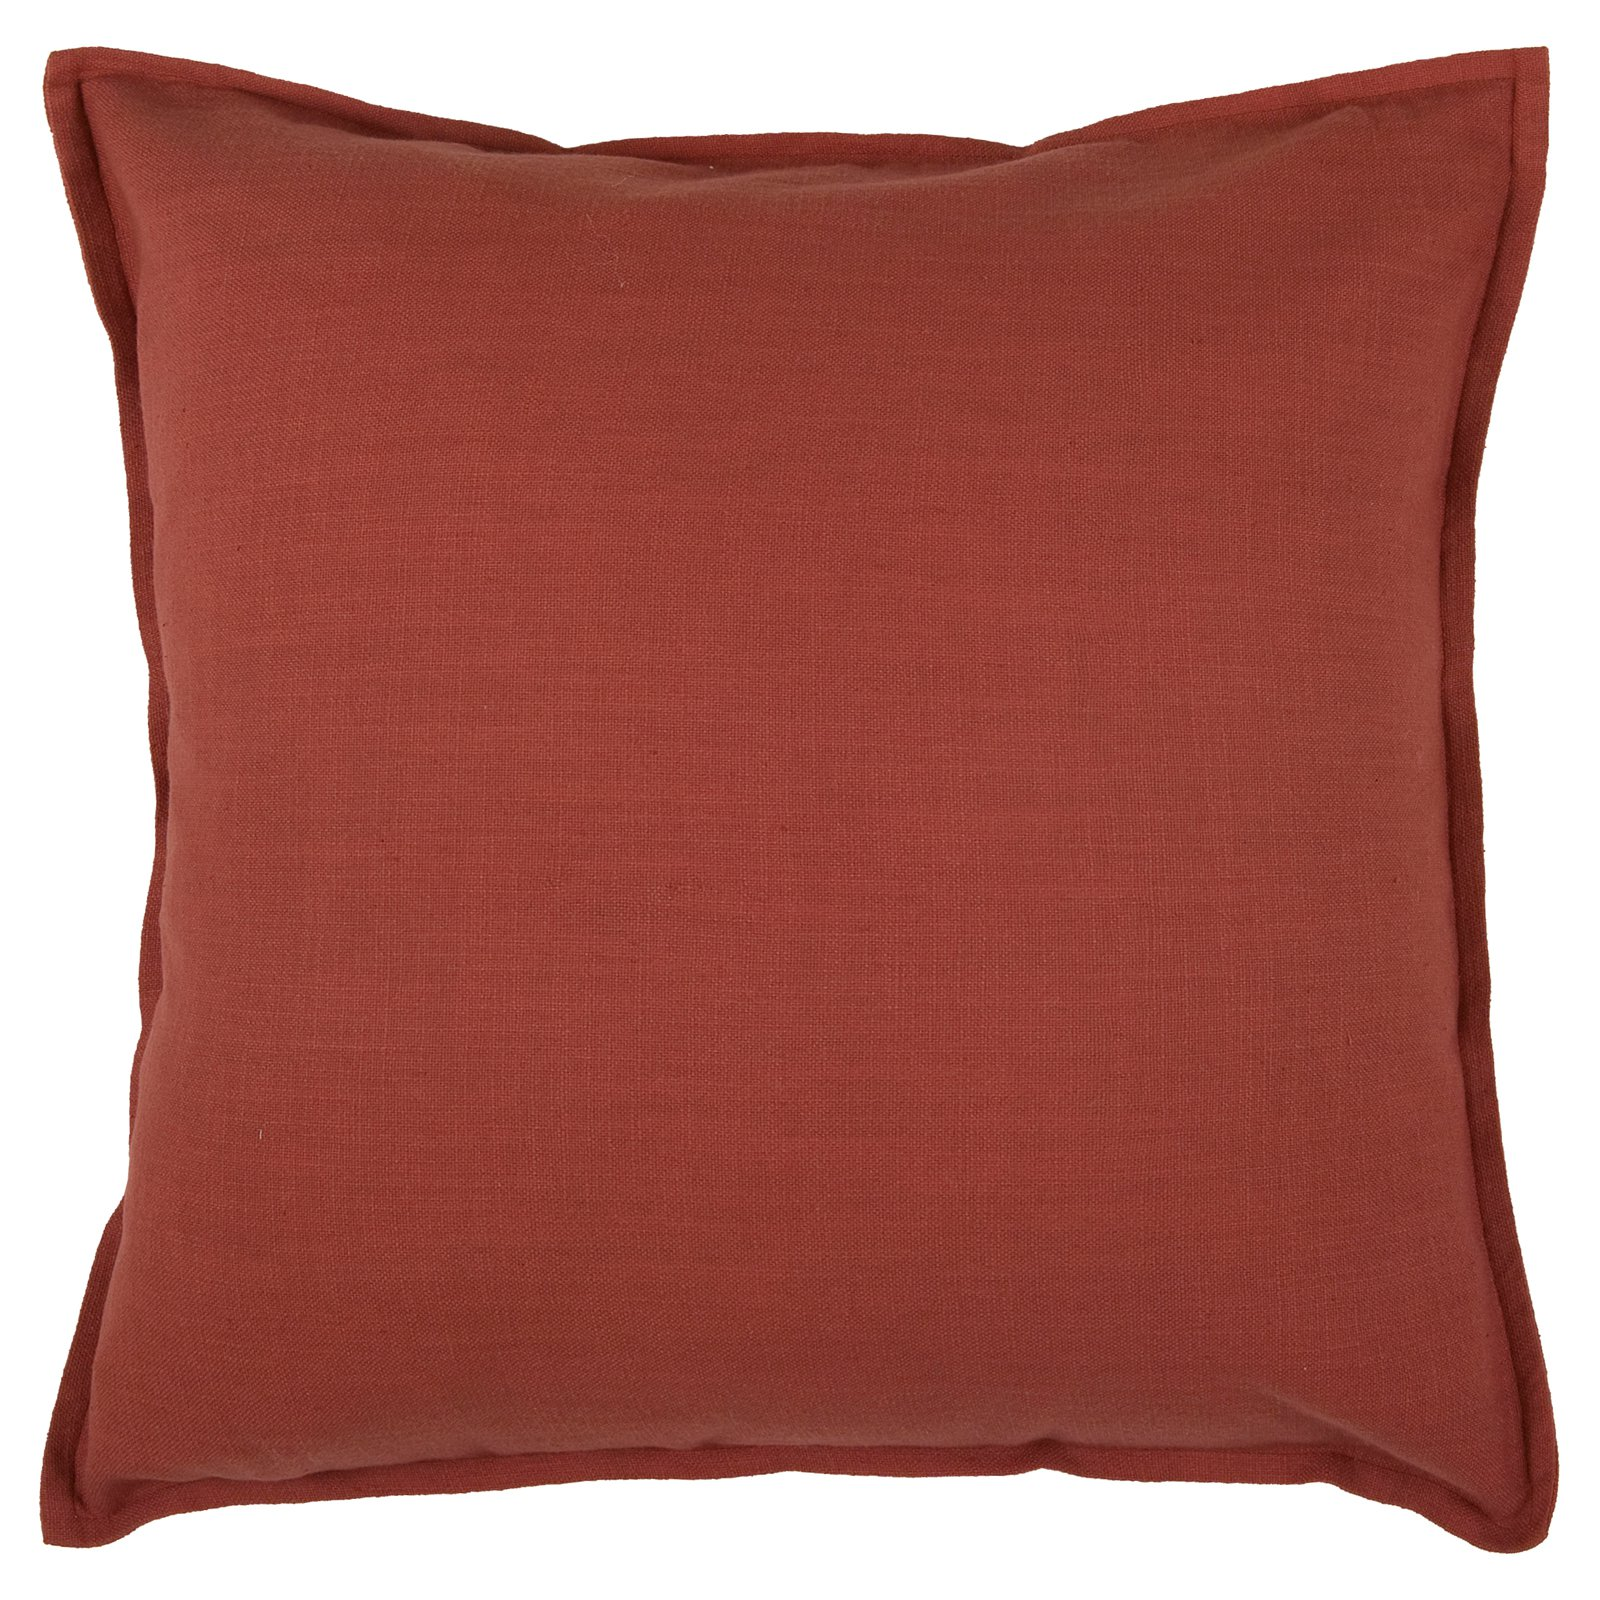 "Rizzy Home T03639 20"" x 20"" Pillow with Hidden Zipper and Polyester Filler"